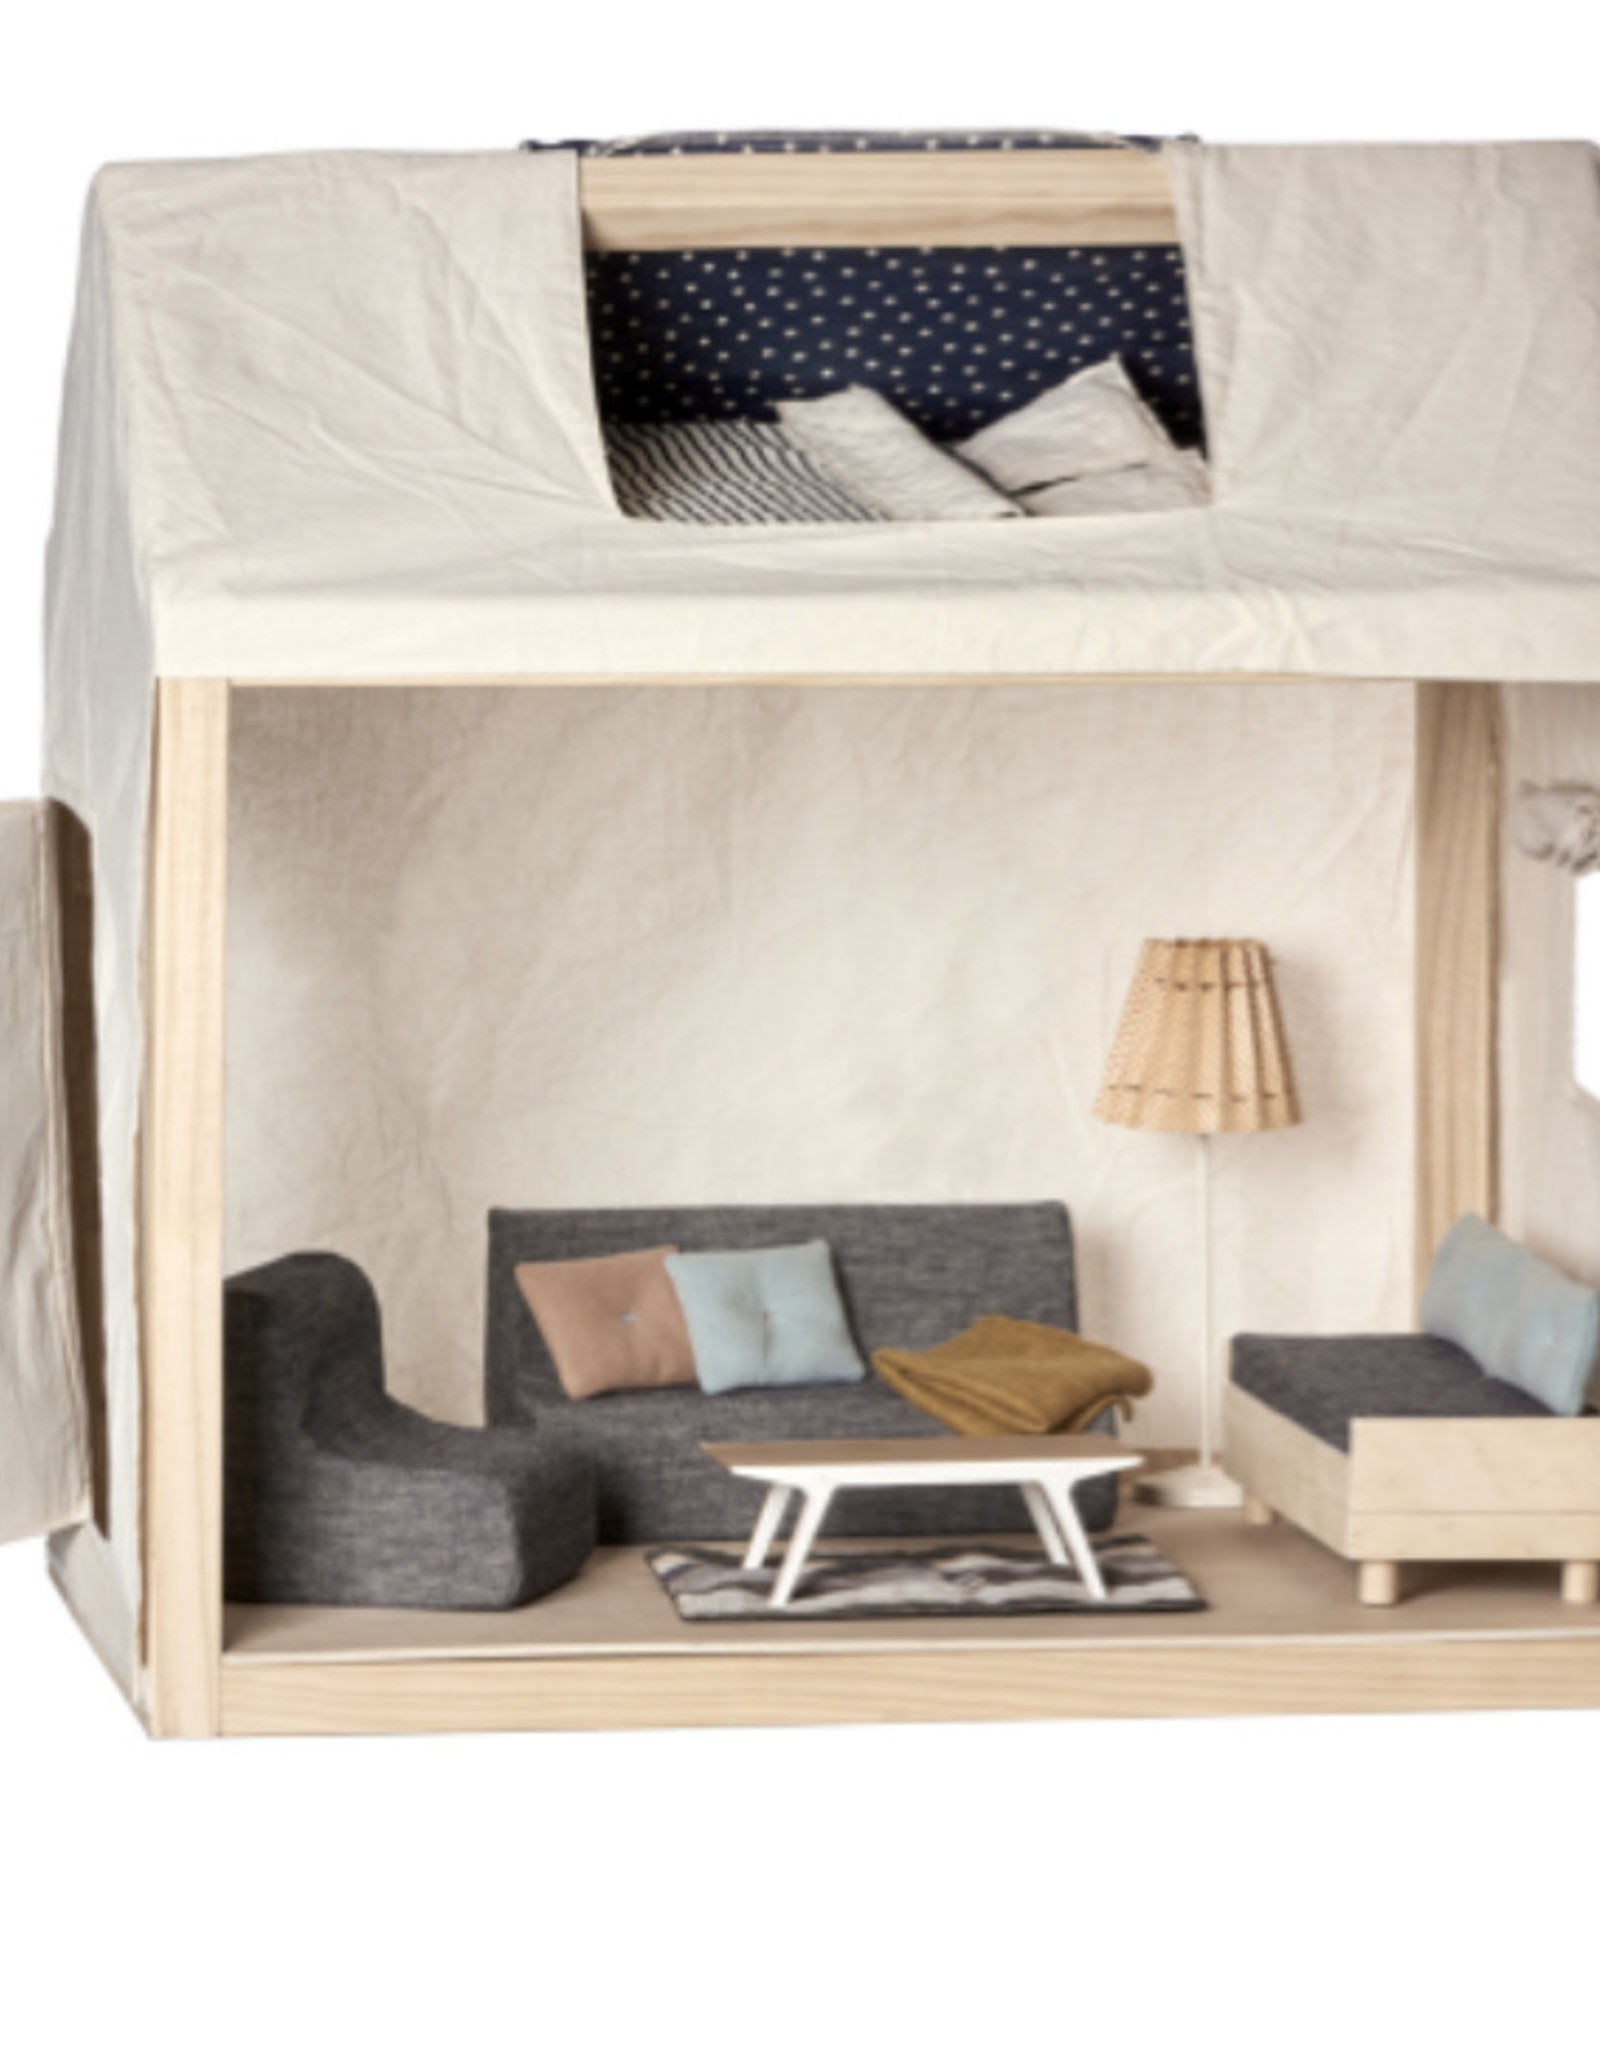 Maileg Maileg - House for Ginger Family, Includes Furniture